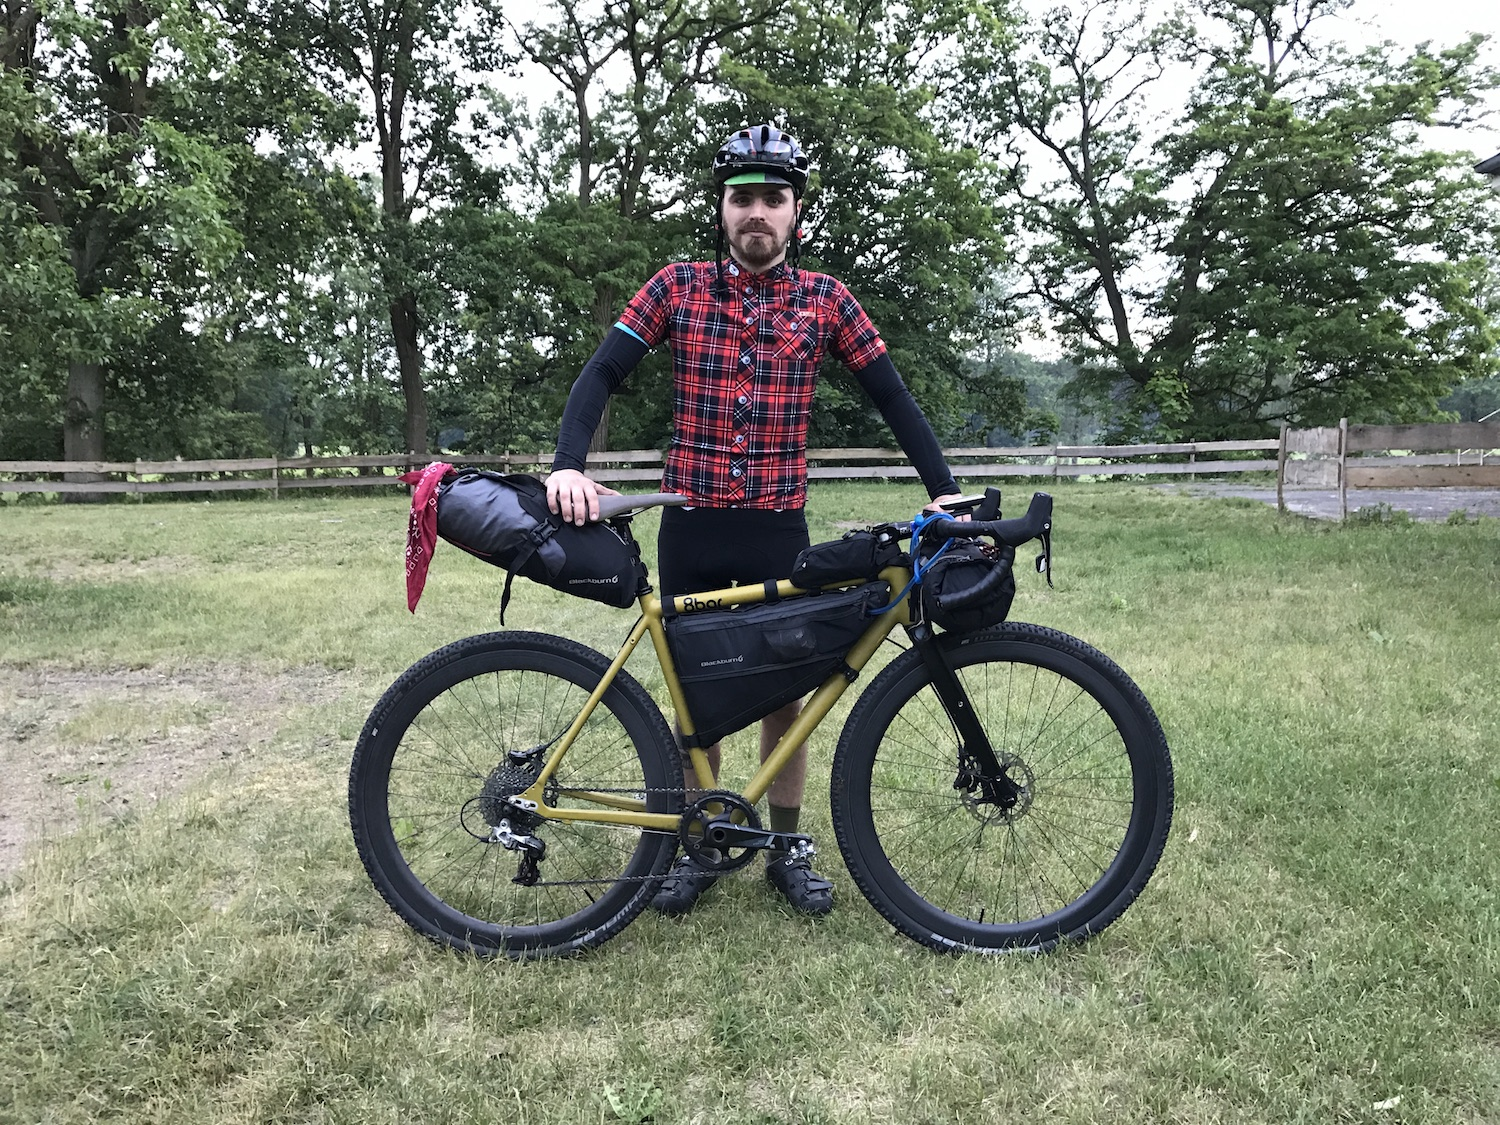 8bar fixie fixed gear mitte 2017 06 08 20 46 42 - We <3 cyclists. Please meet … Chris!